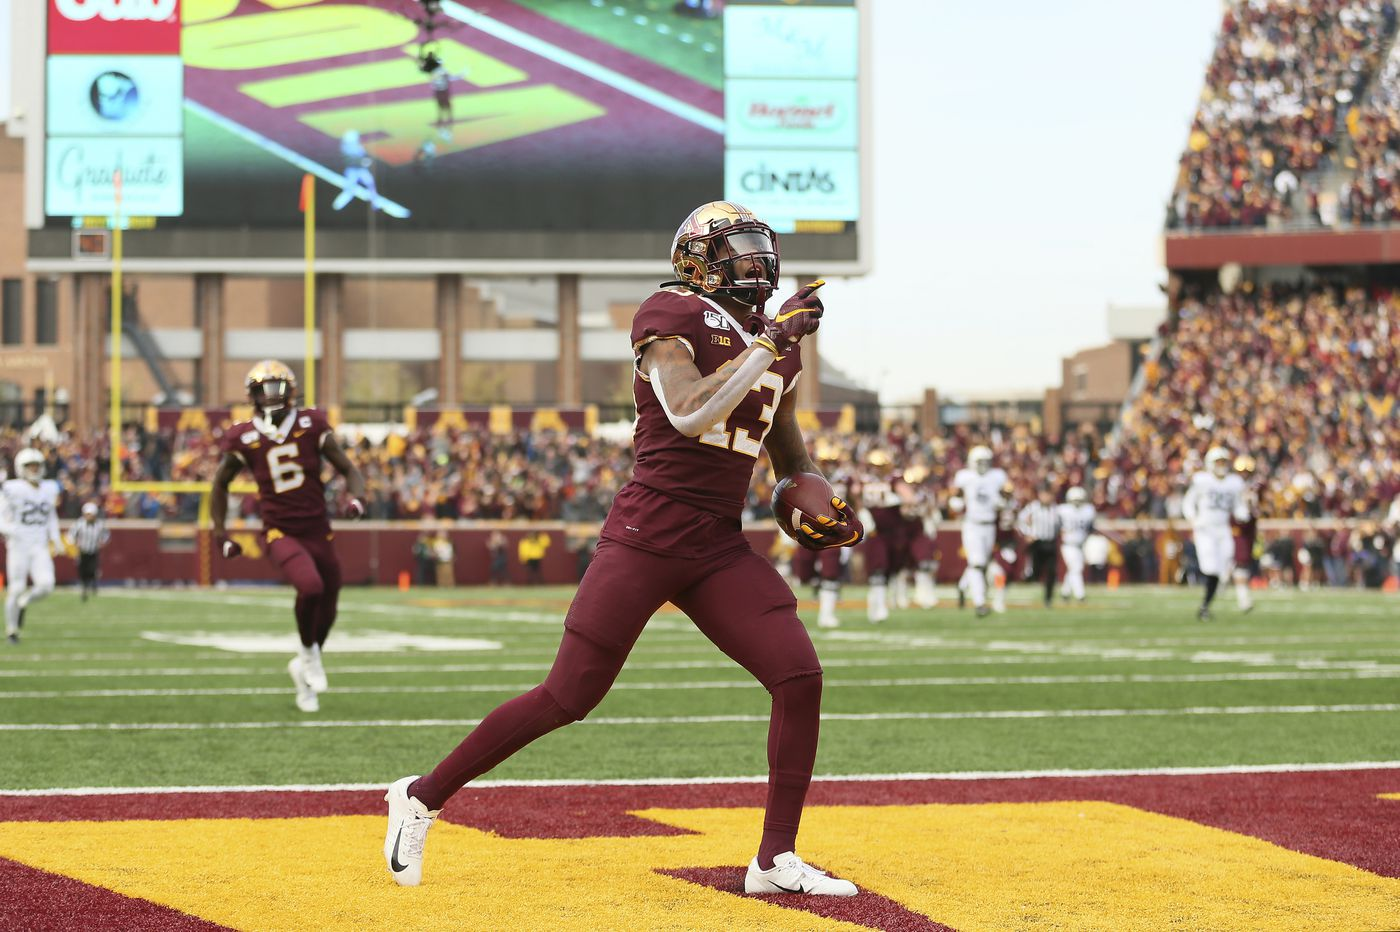 Sports chatter: University of Minnesota won't use Minneapolis Police Department for football games, large events after George Floyd's death